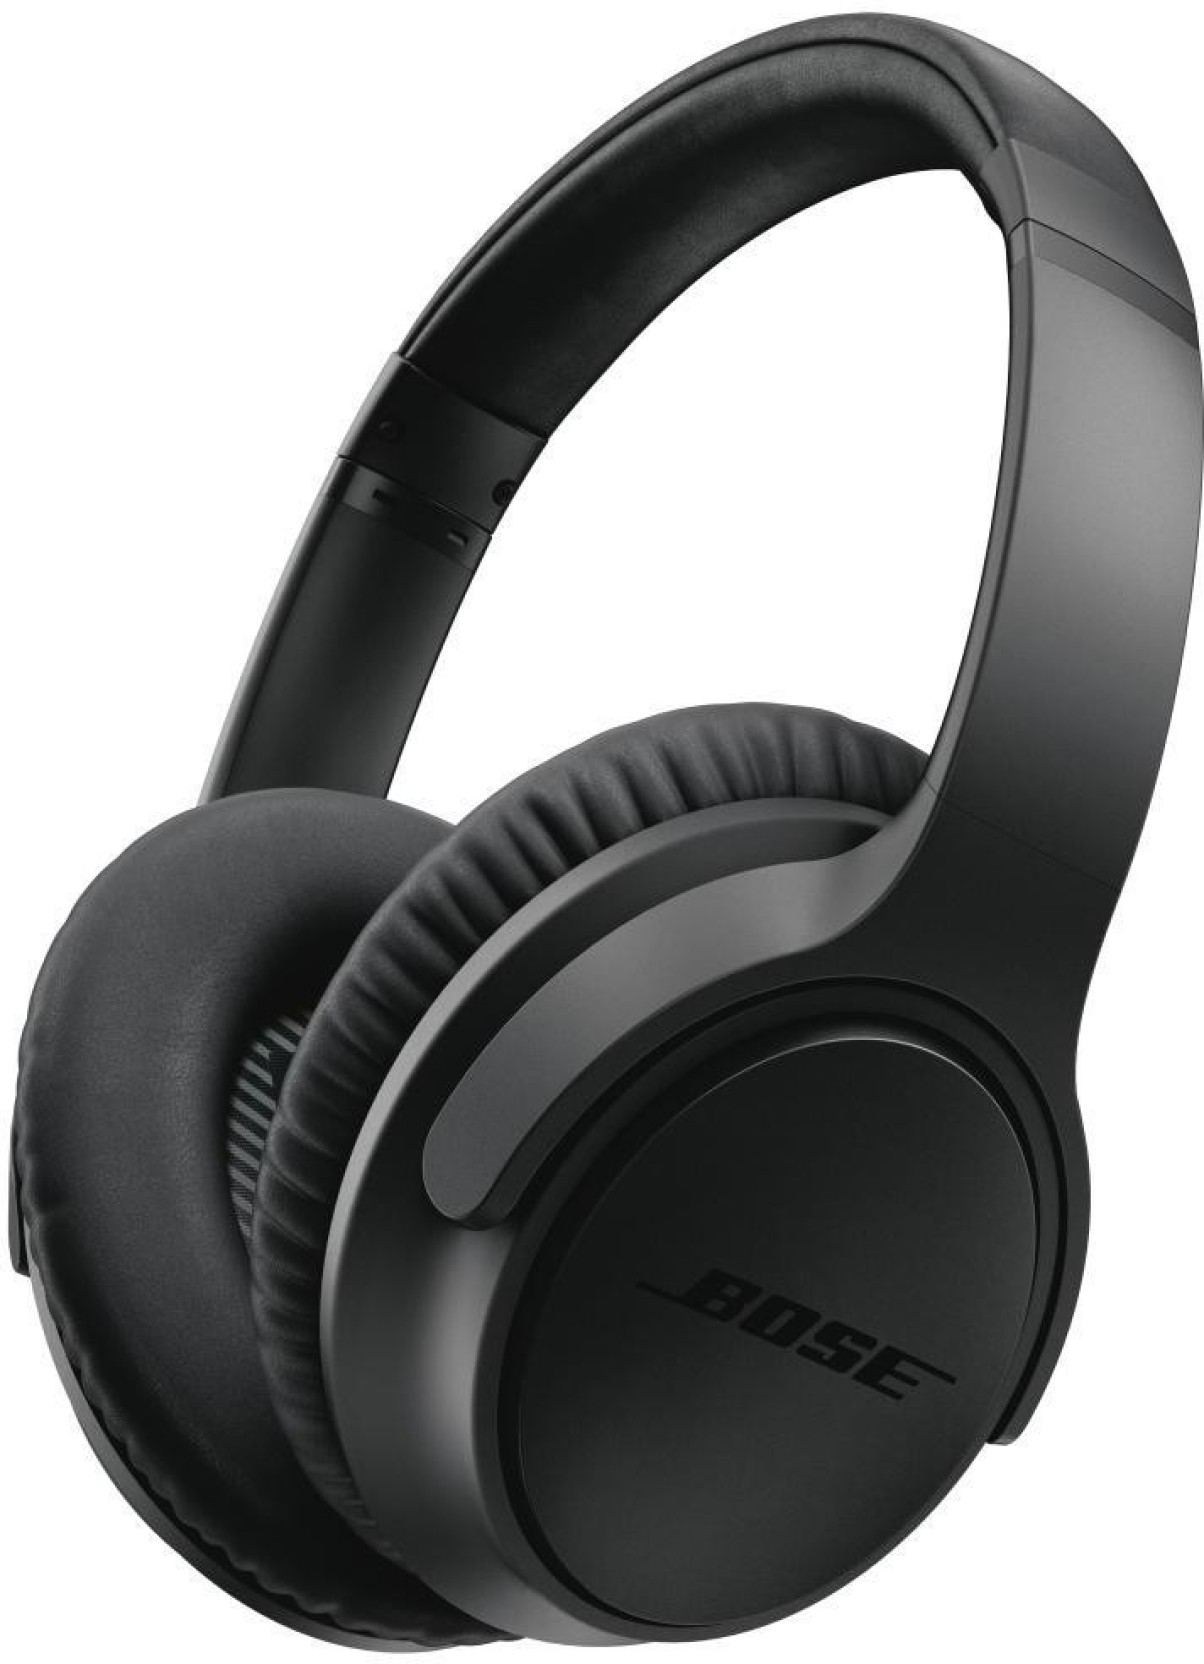 Bose Soundtrue Around Ear Ii Wired Headset With Mic Price